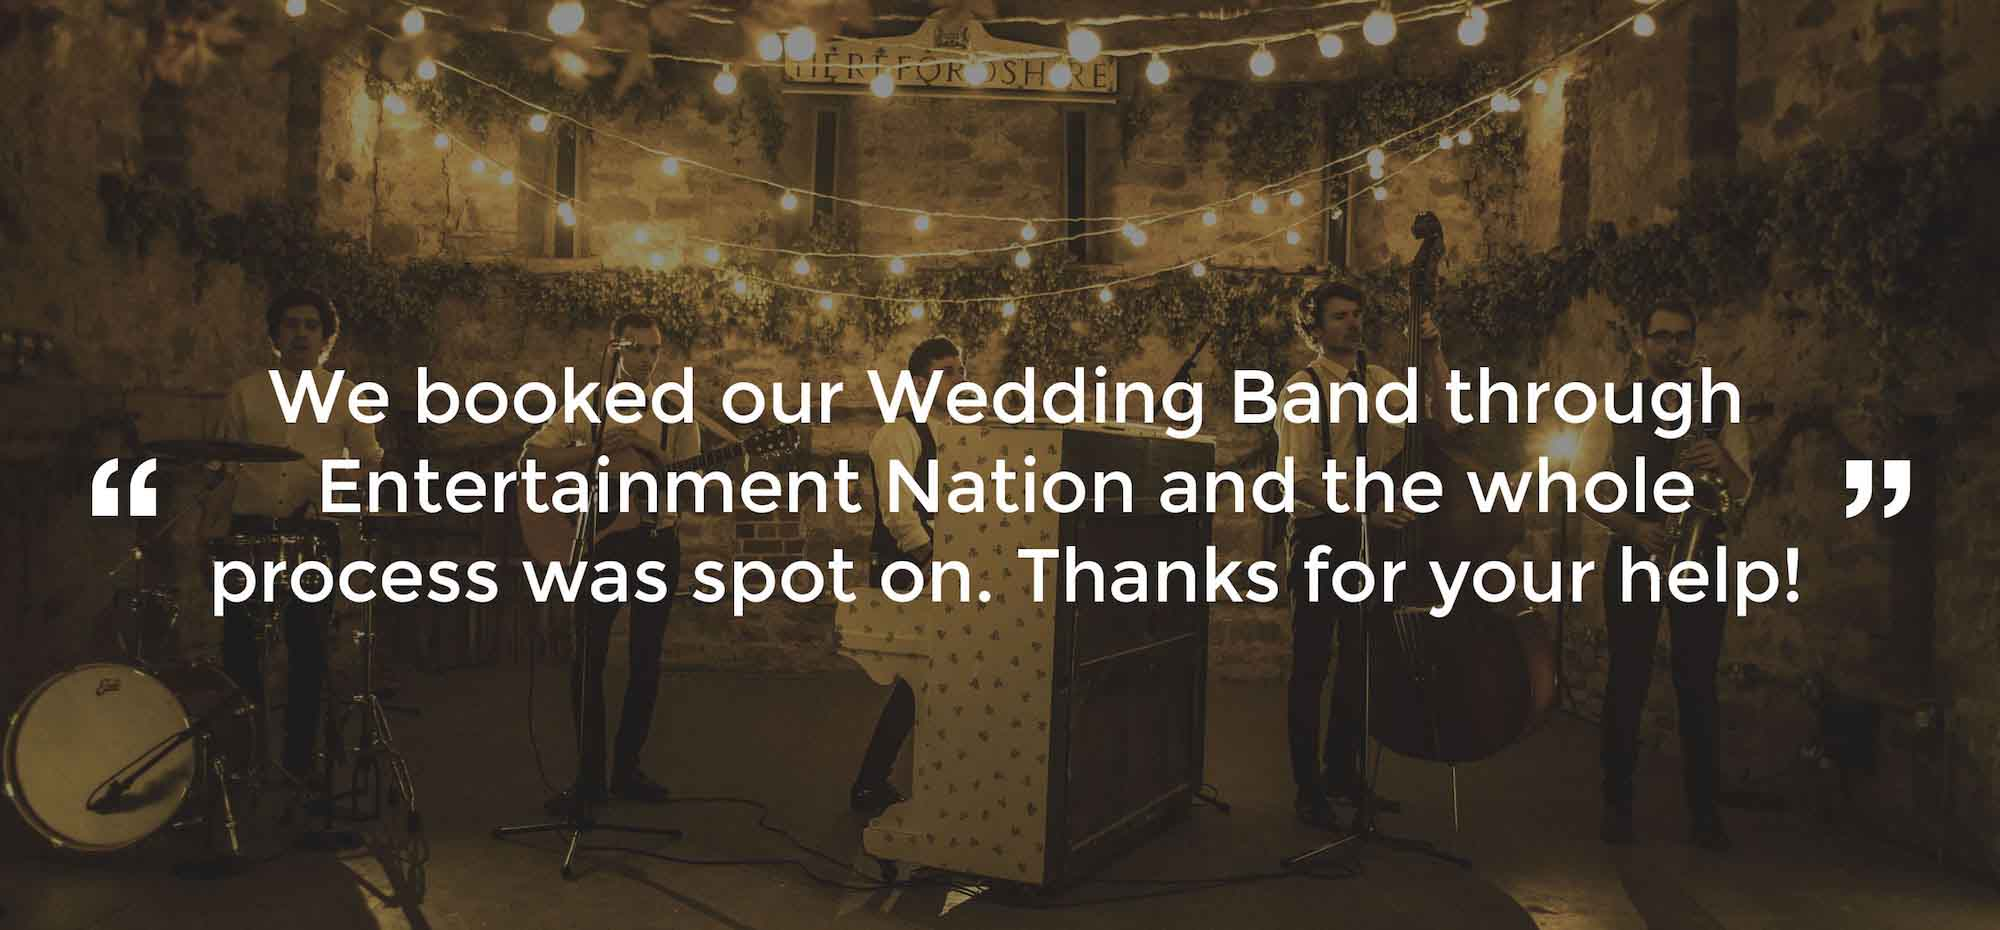 Client Review of a Wedding Band East Sussex